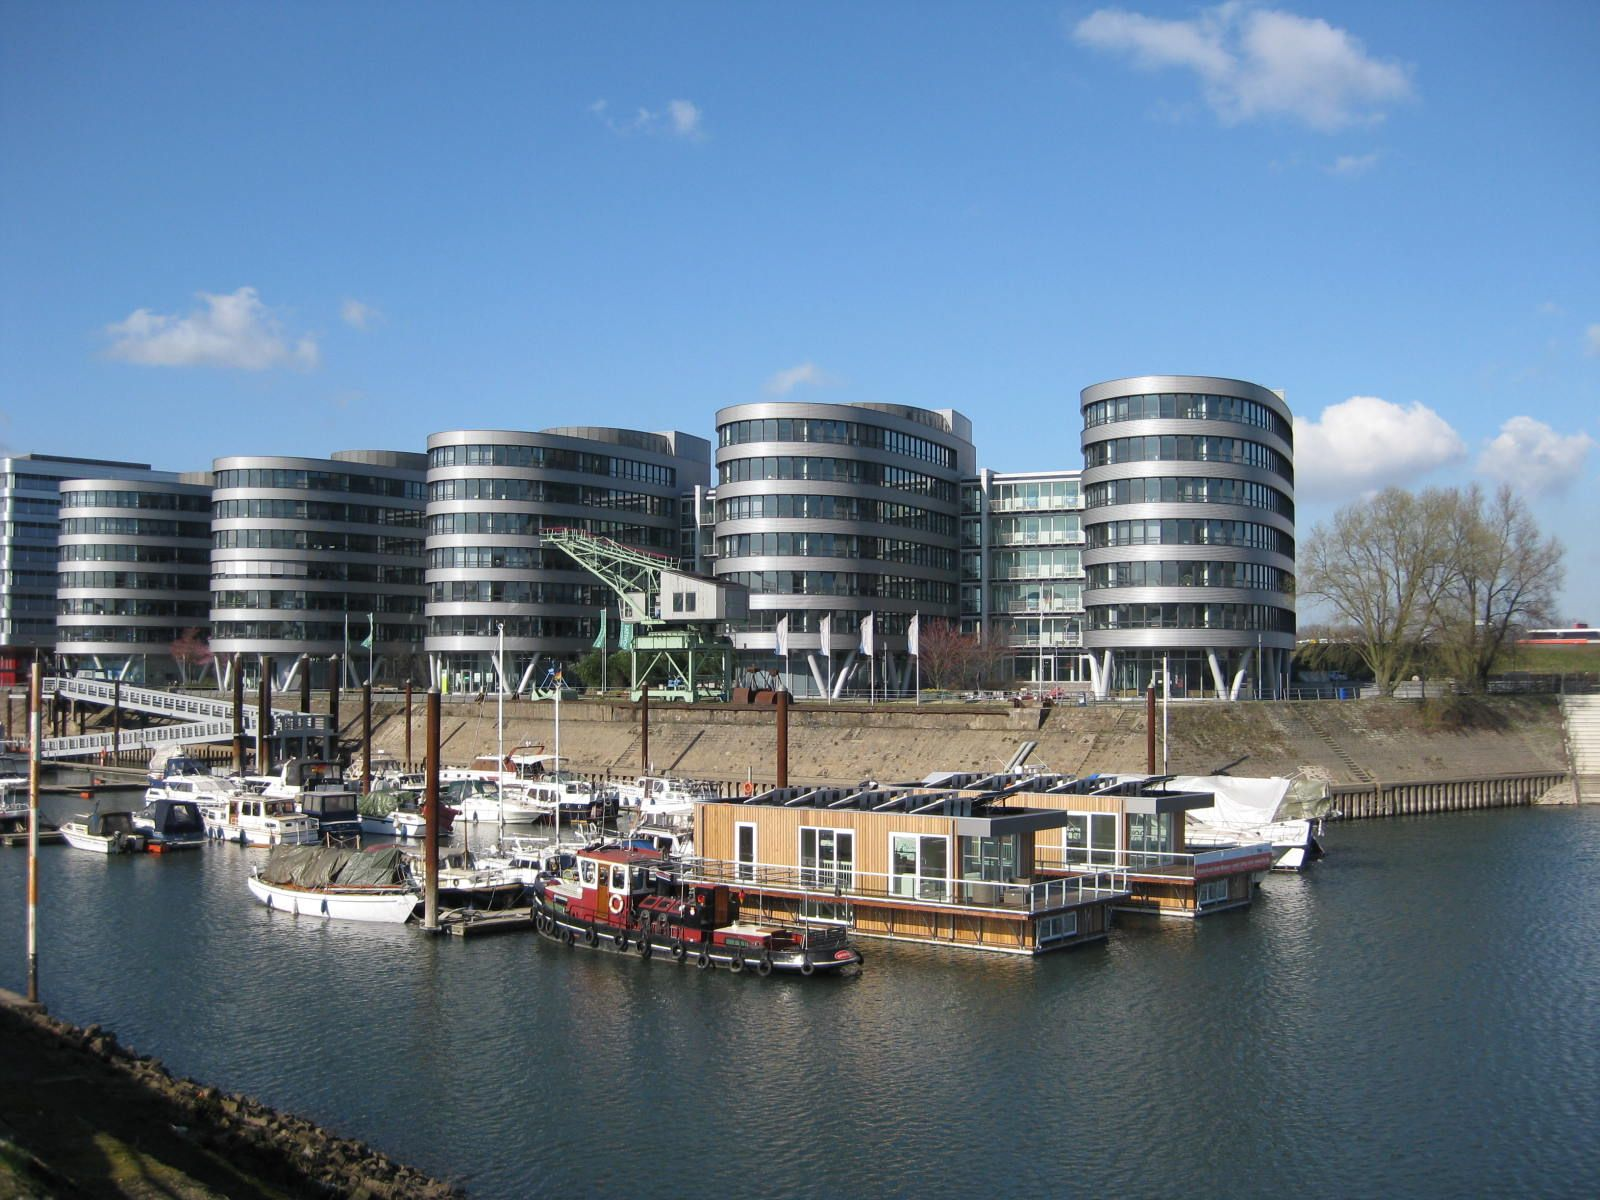 House boats and new apartments, Duisburg Harbour, Germany